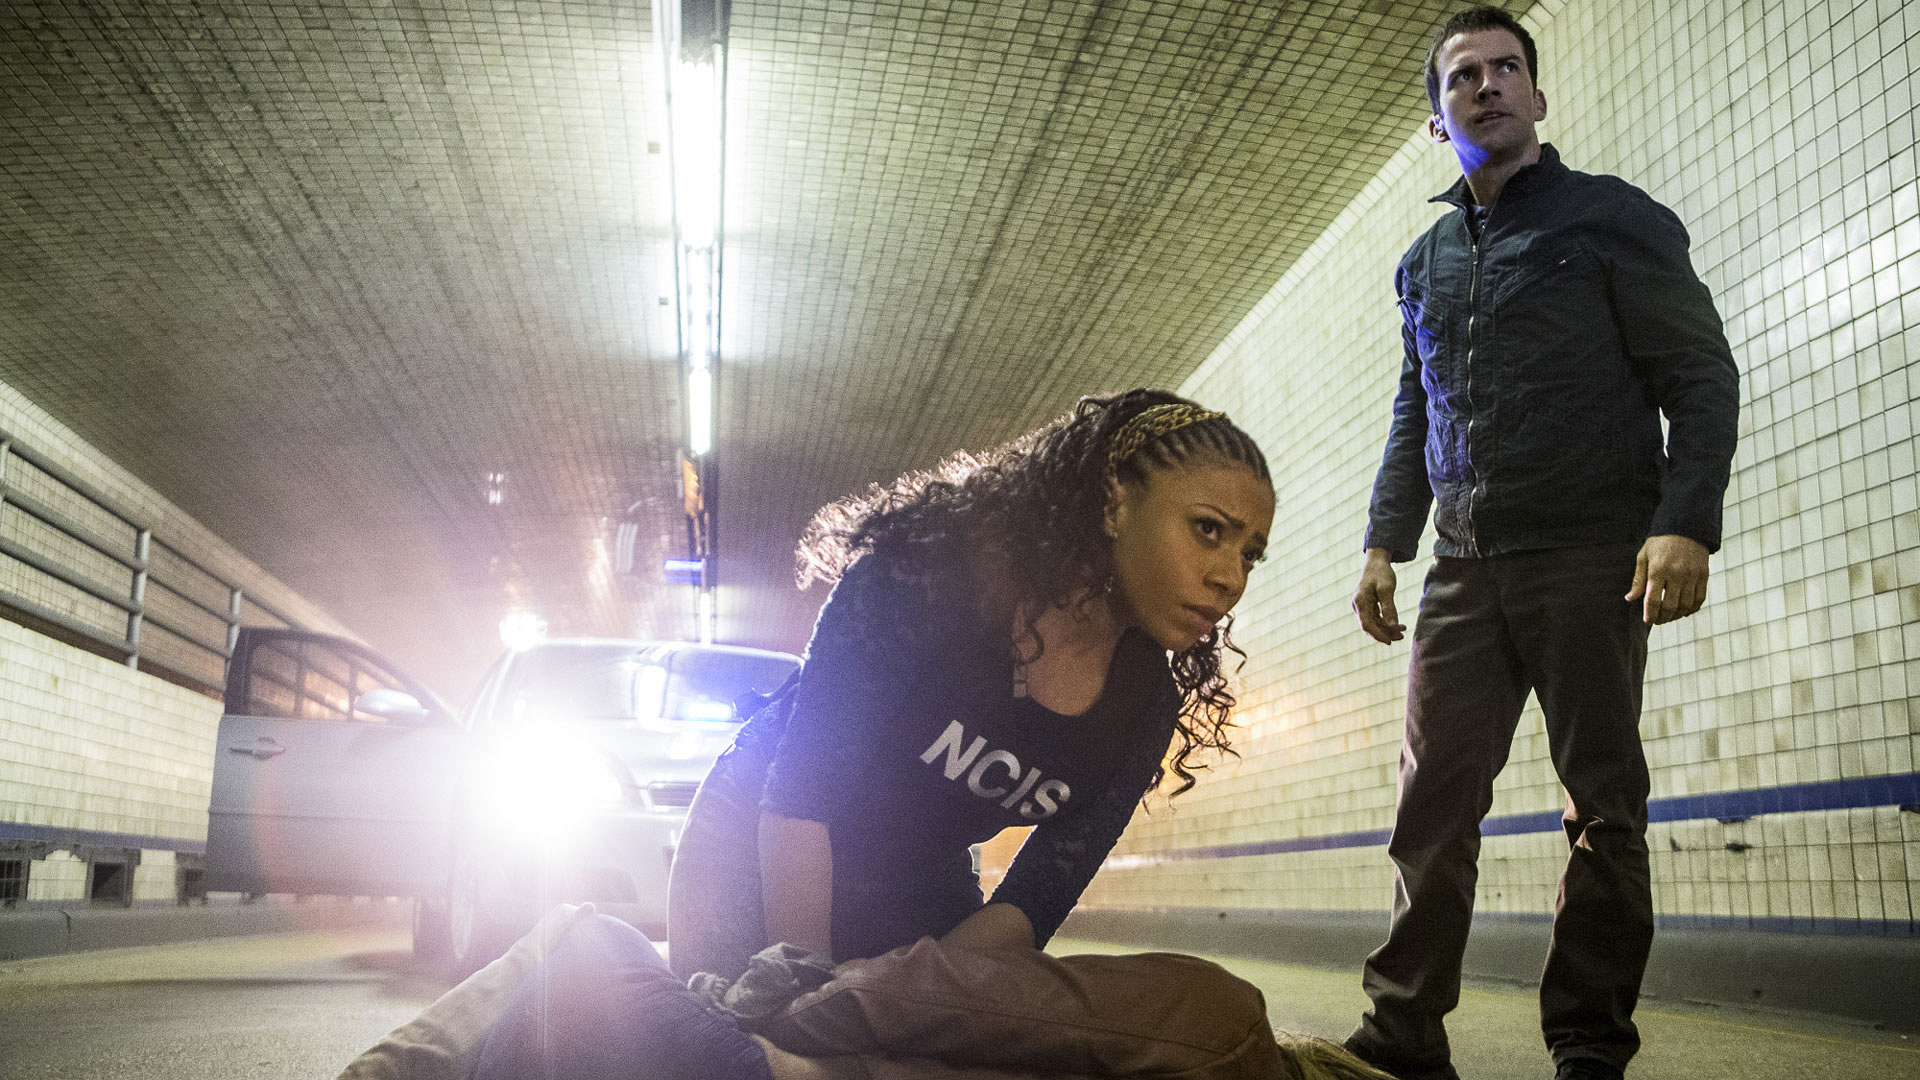 Shalita Grant as Sonja Percy and Lucas Black as Christopher LaSalle